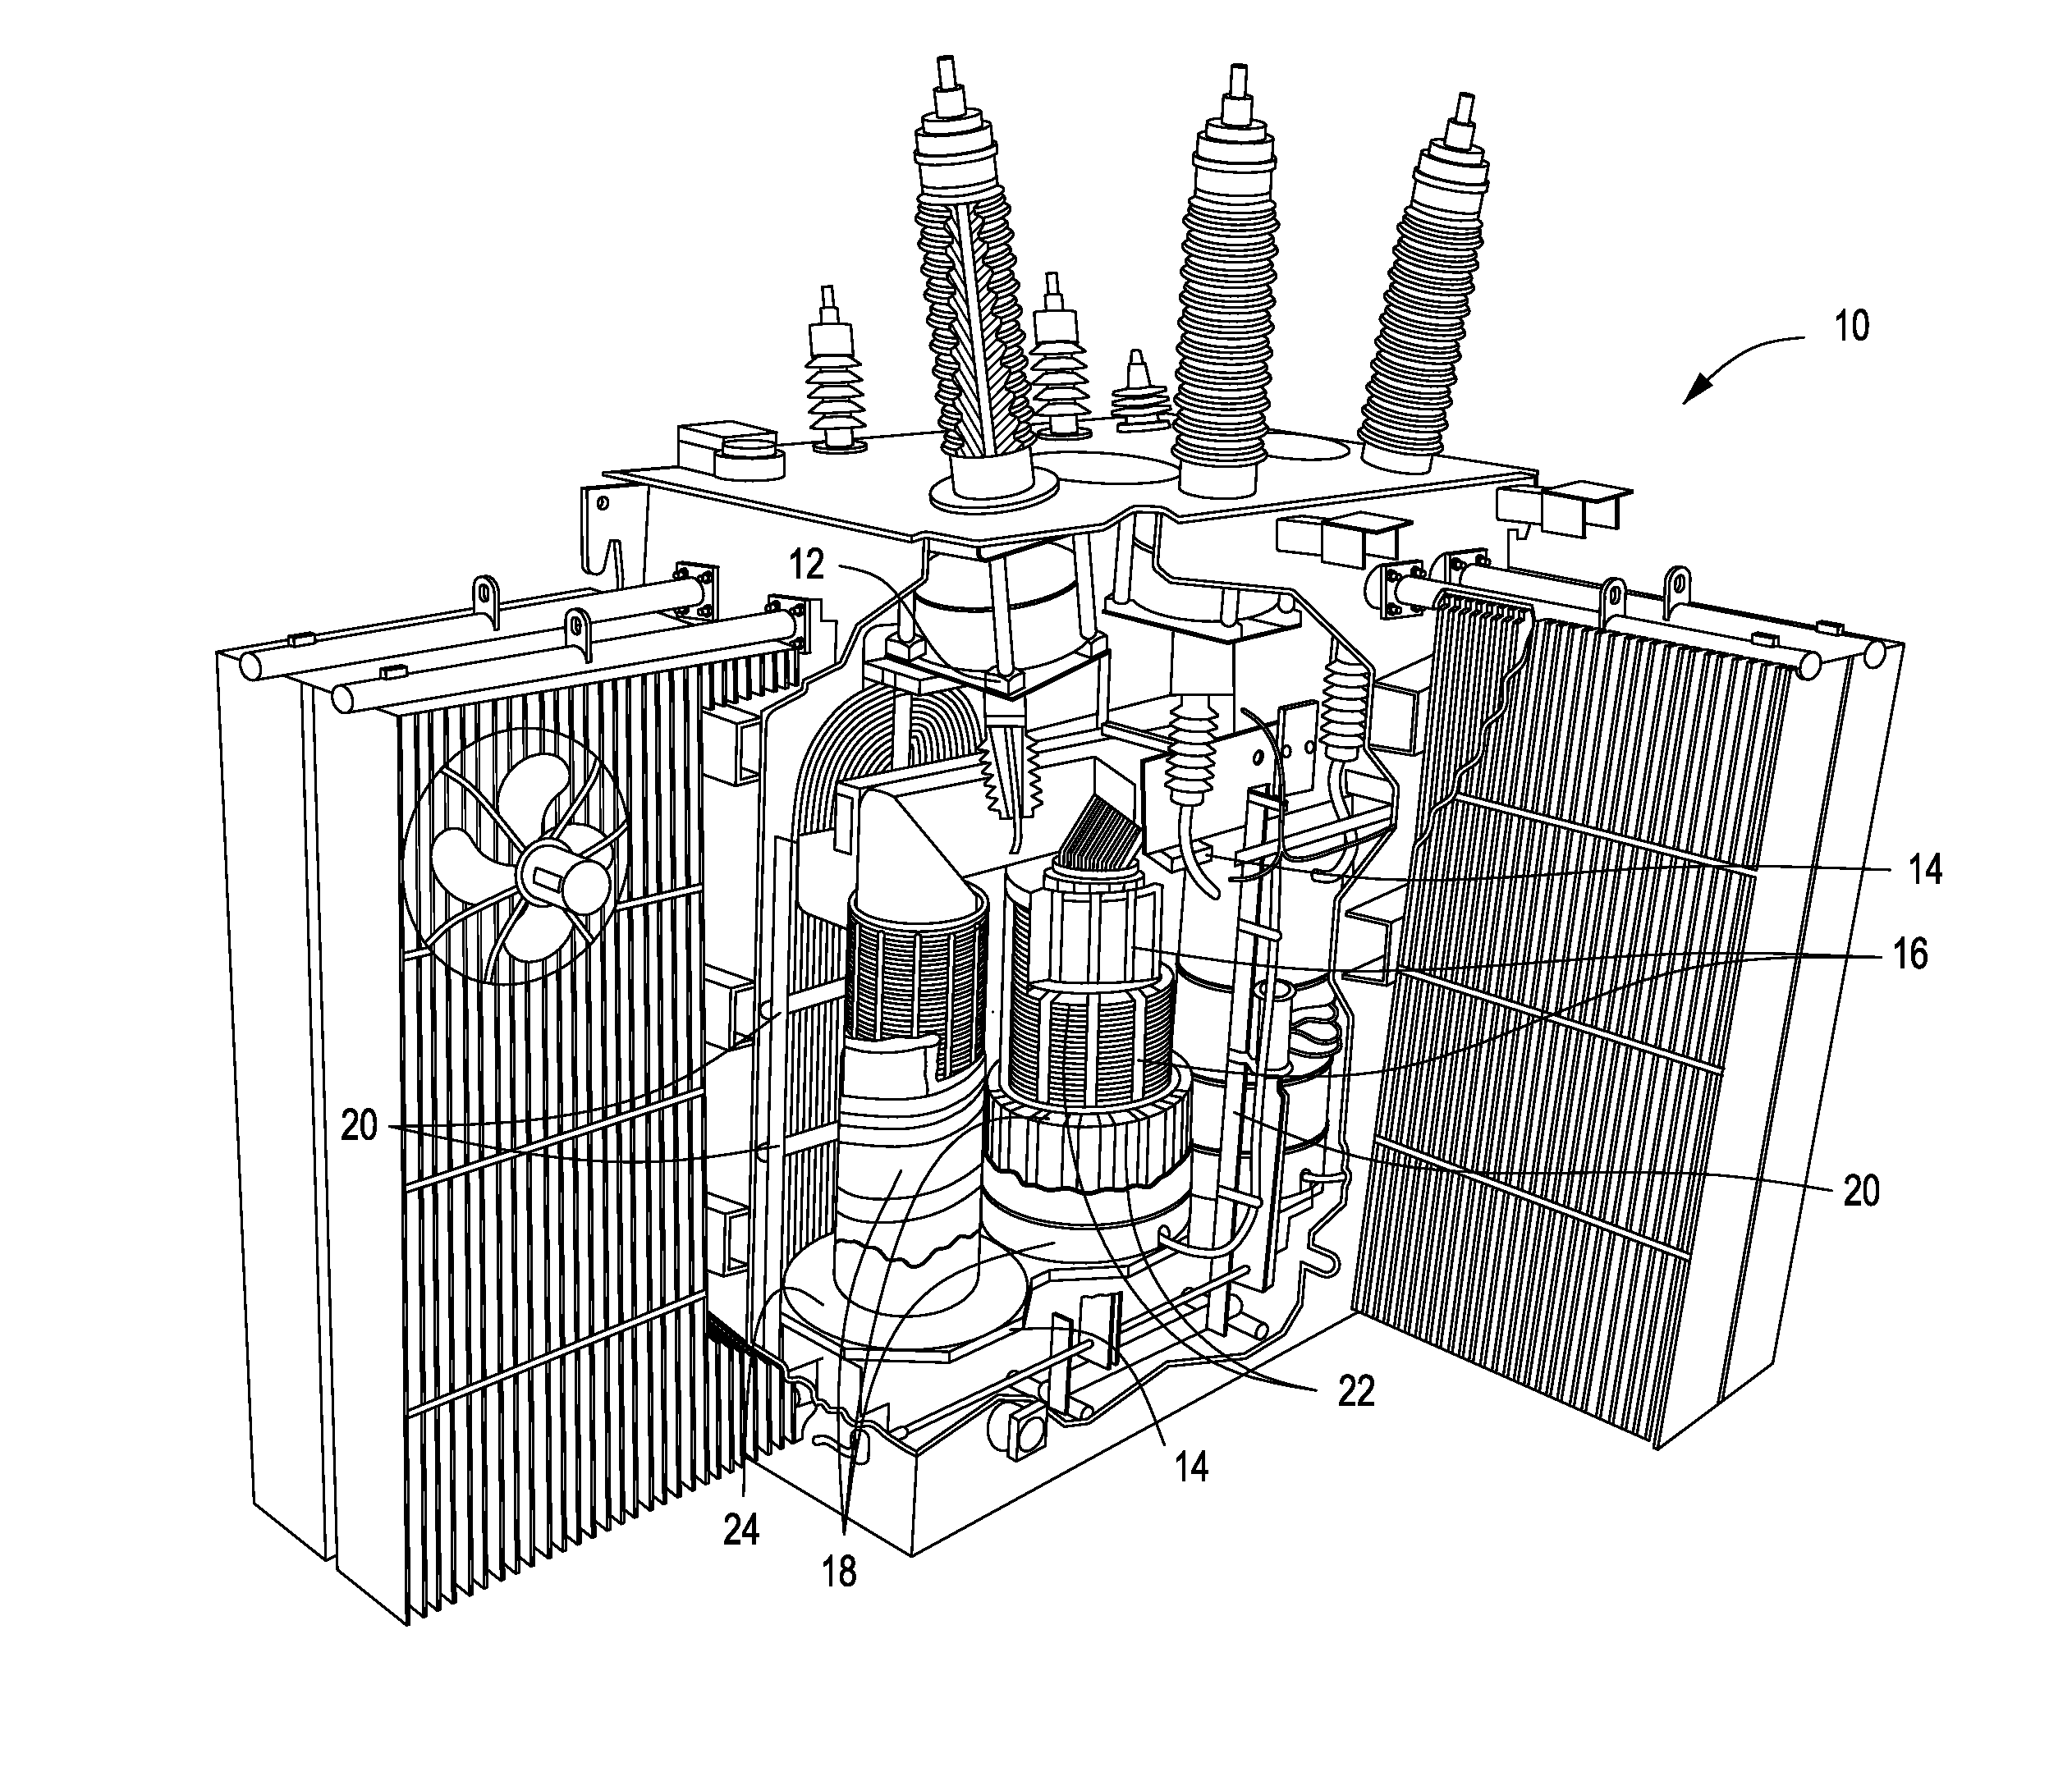 Drawn power line electrical transformer Google for US20120249275 Insulation Drawing